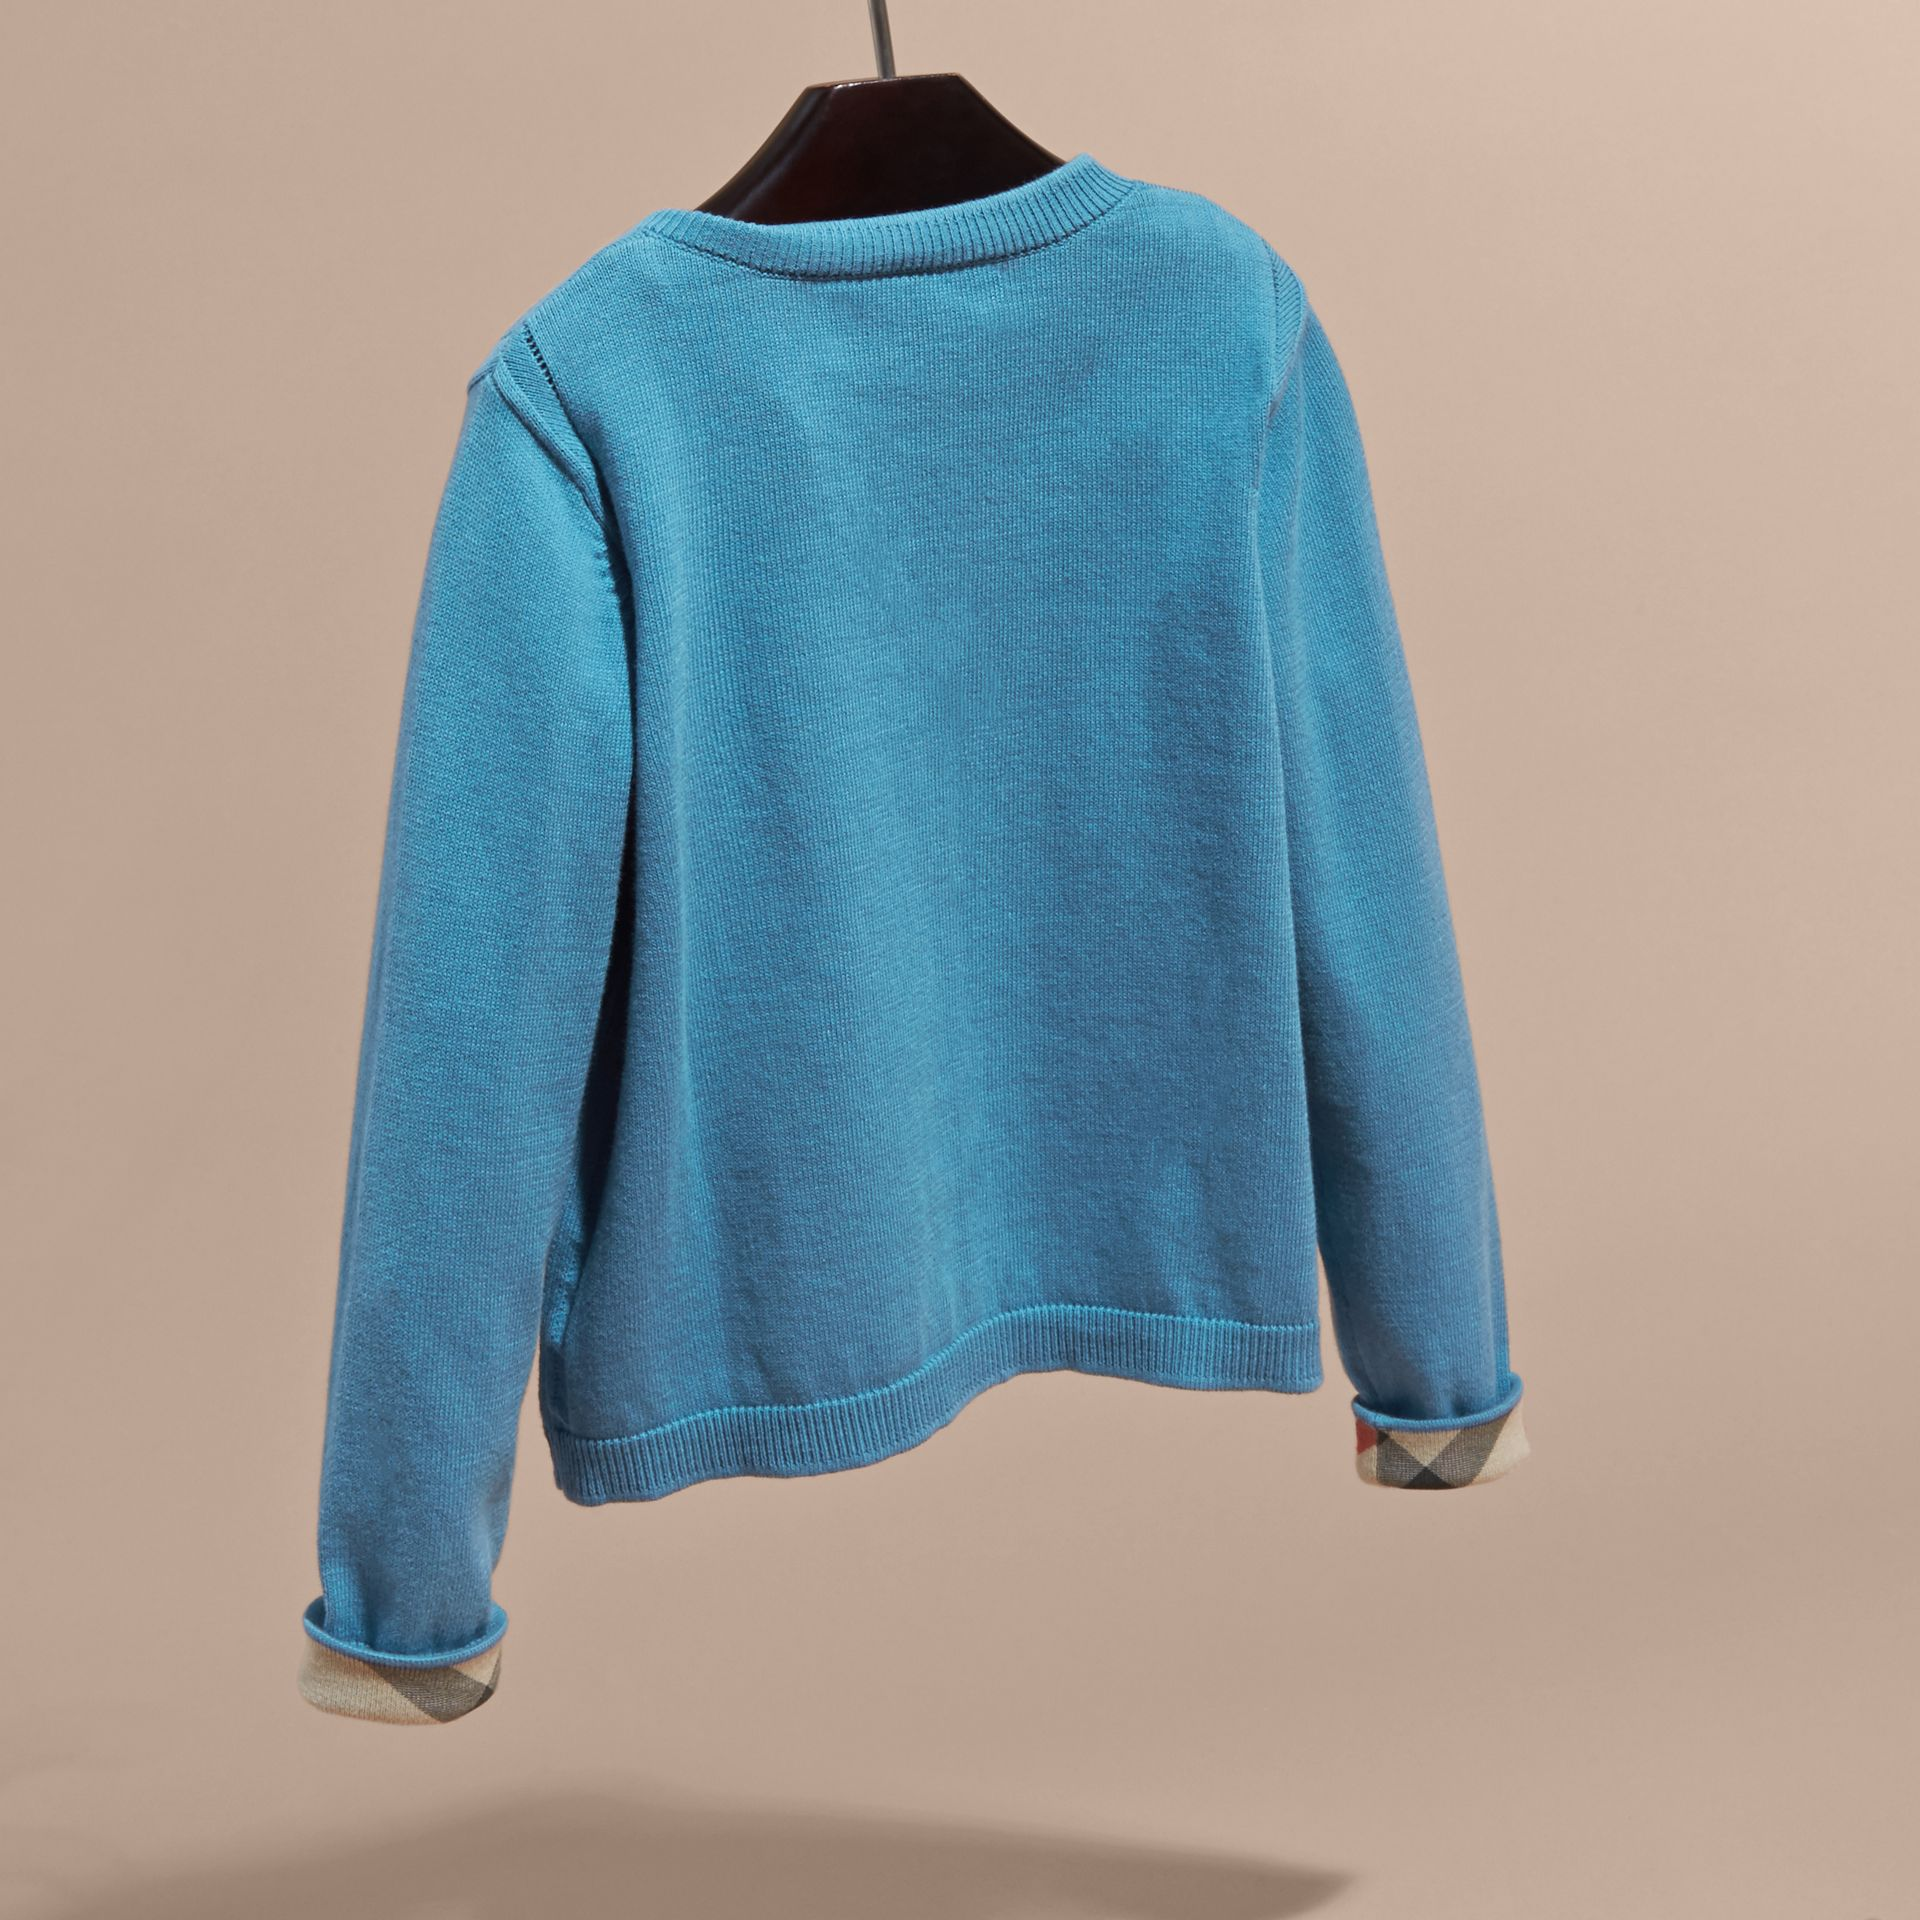 Check Cuff Cotton Knit Cardigan Pale Pewter Blue - gallery image 4